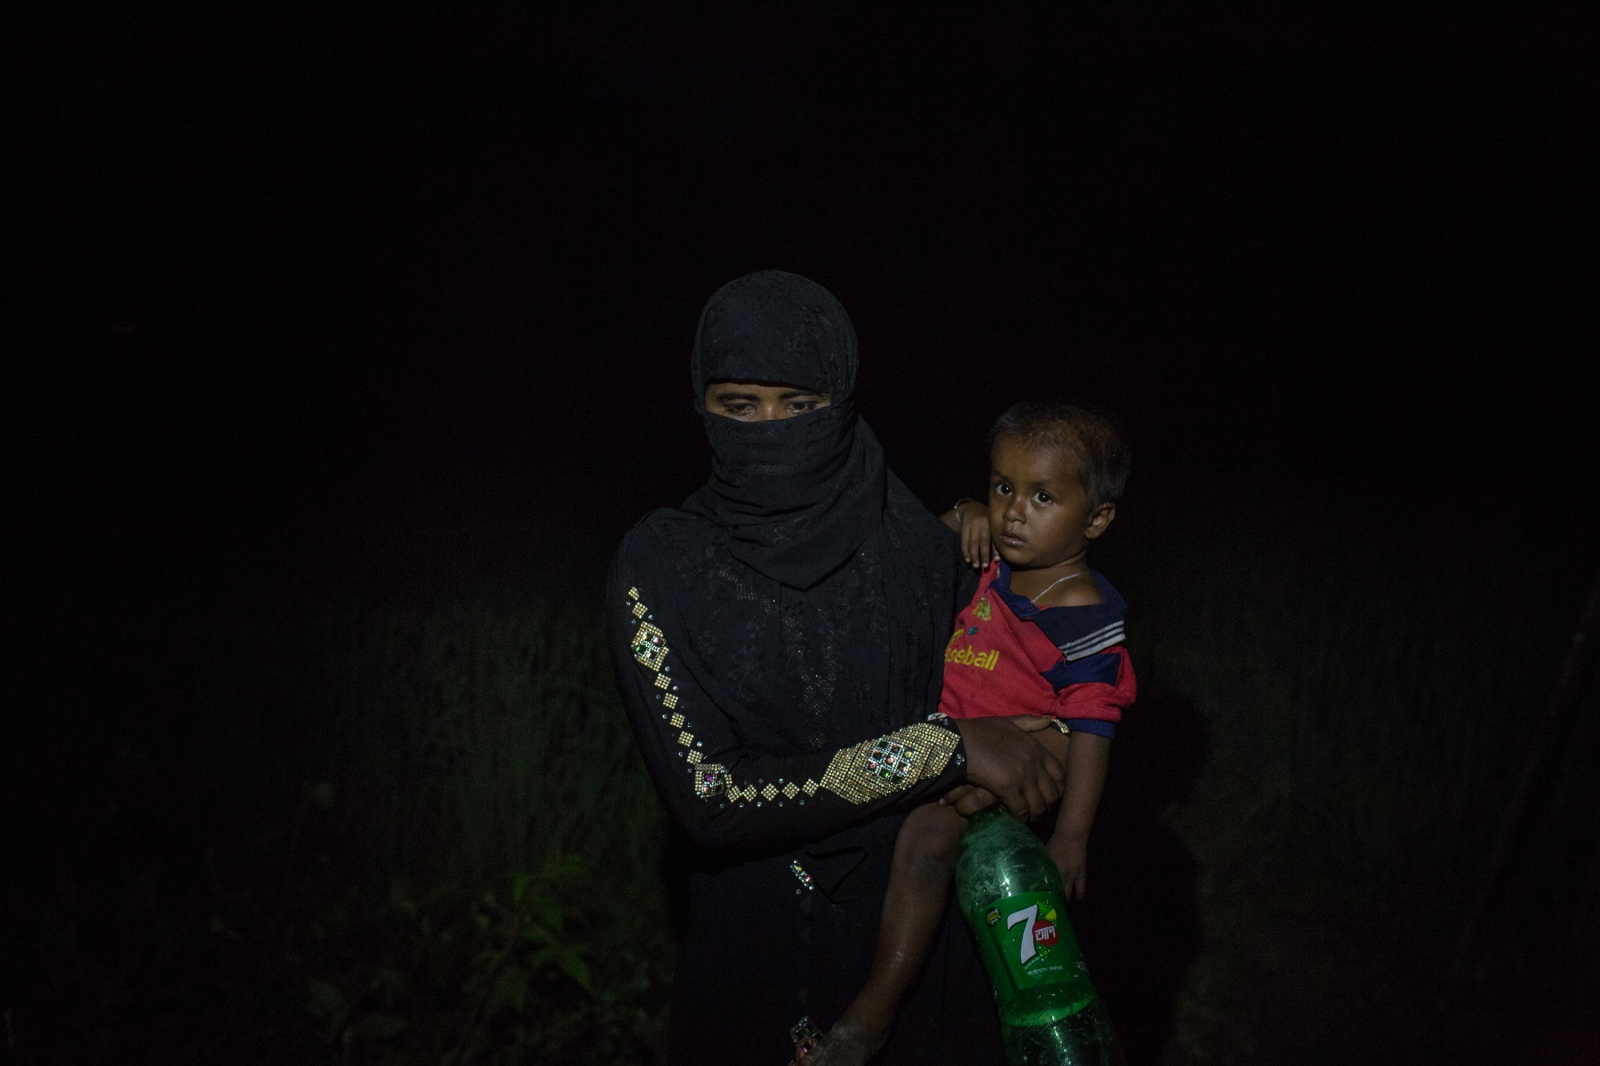 Rashida Begum, 22, waits with her son by the side of the road for food and cash distributions near the Balukhali refugee camp in Bangladesh on Friday September 22, 2017. Rashida's husband was asleep inside their home when the army arrived and set their house alight, with him still inside. He died in the fire, and Rashida was forced to flee.